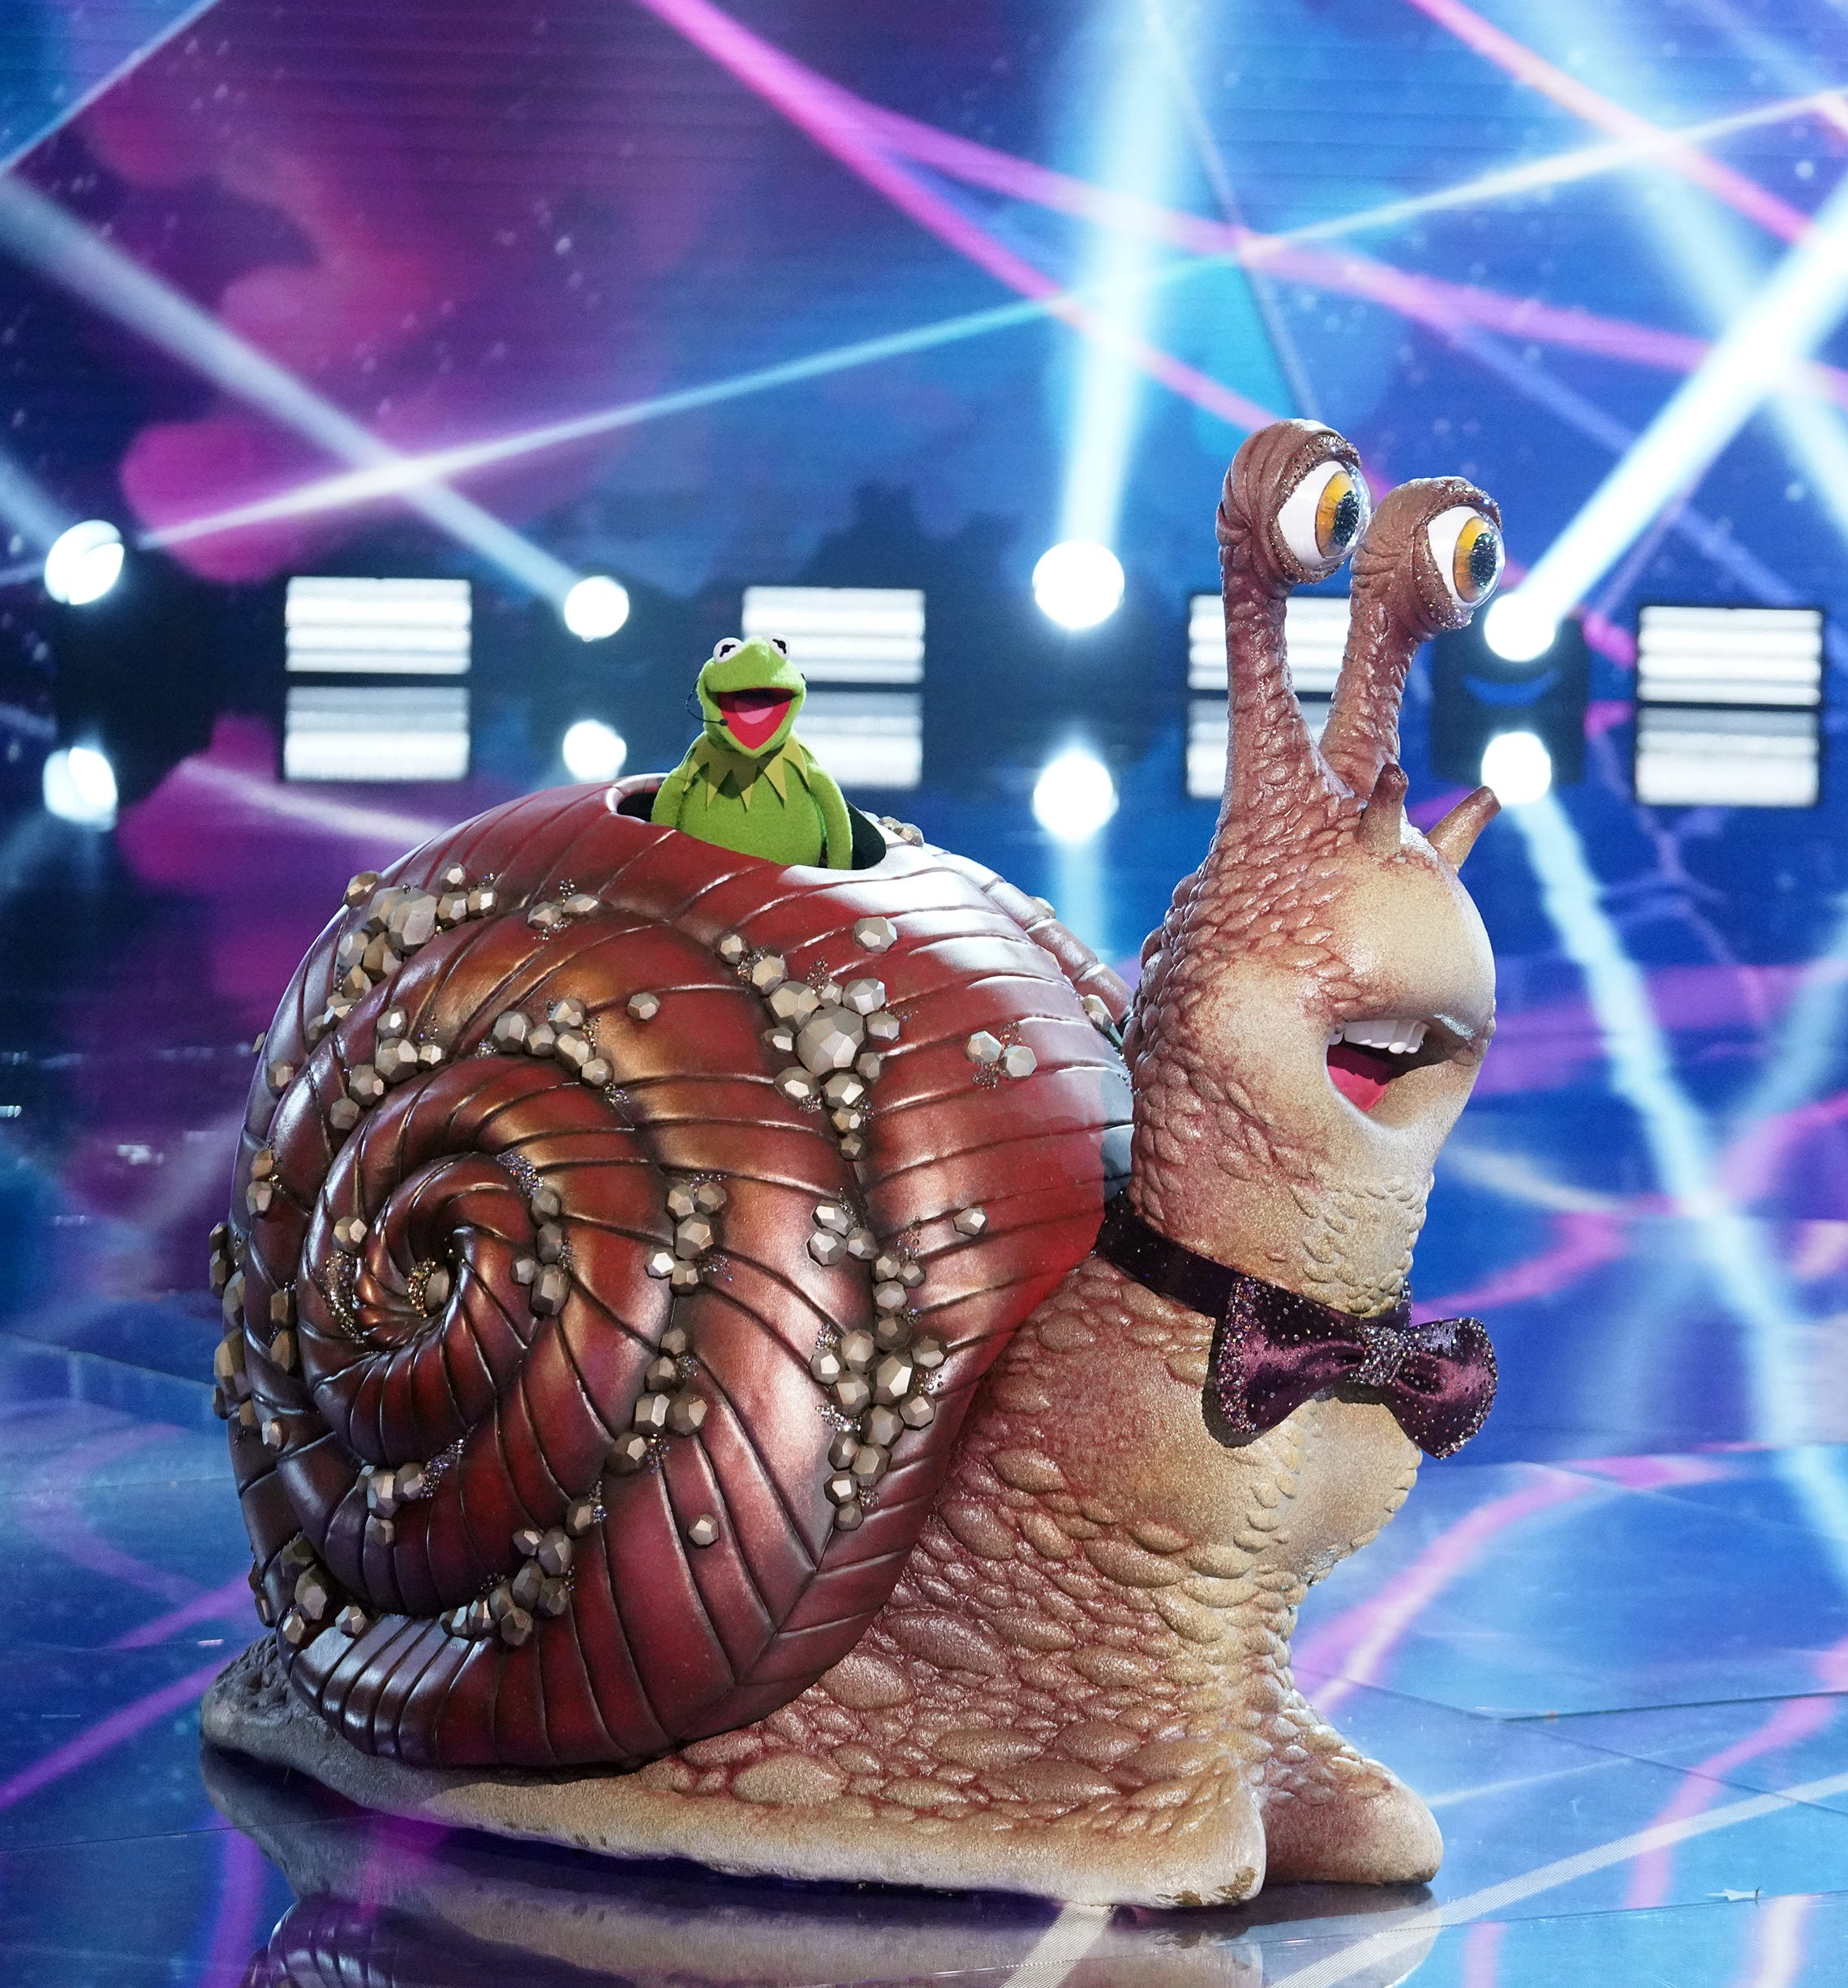 Masked Singer  premiere: Snail is slugged by competition, revealed to be Kermit the Frog